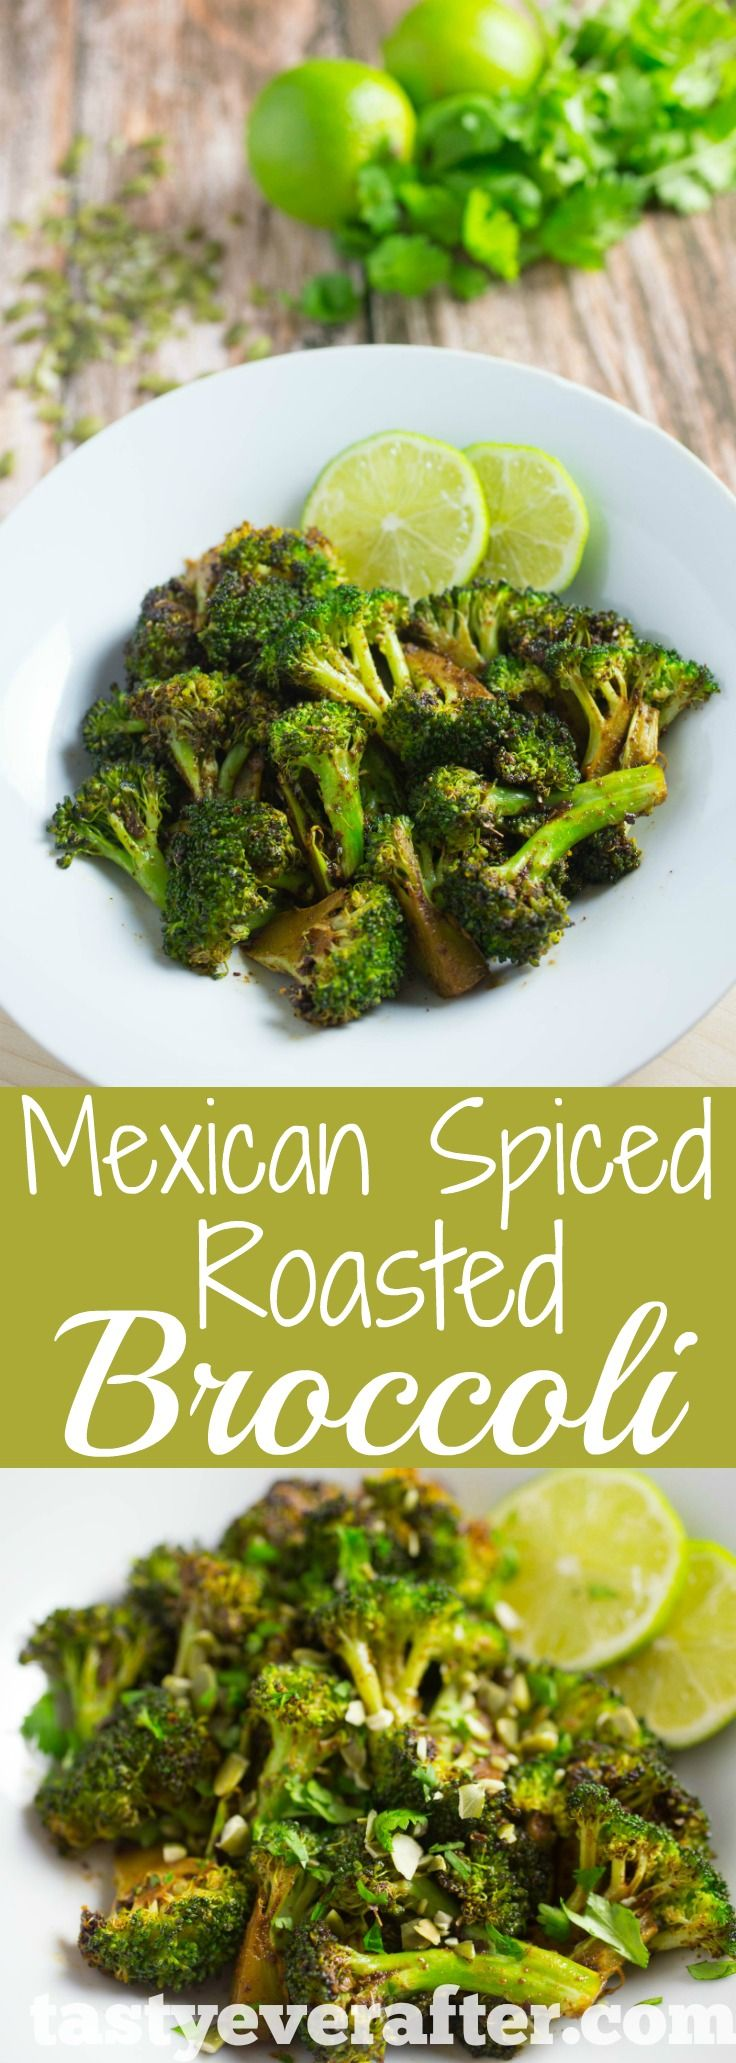 Mexican Roasted Broccoli Recipe Tasty Ever After Recipes